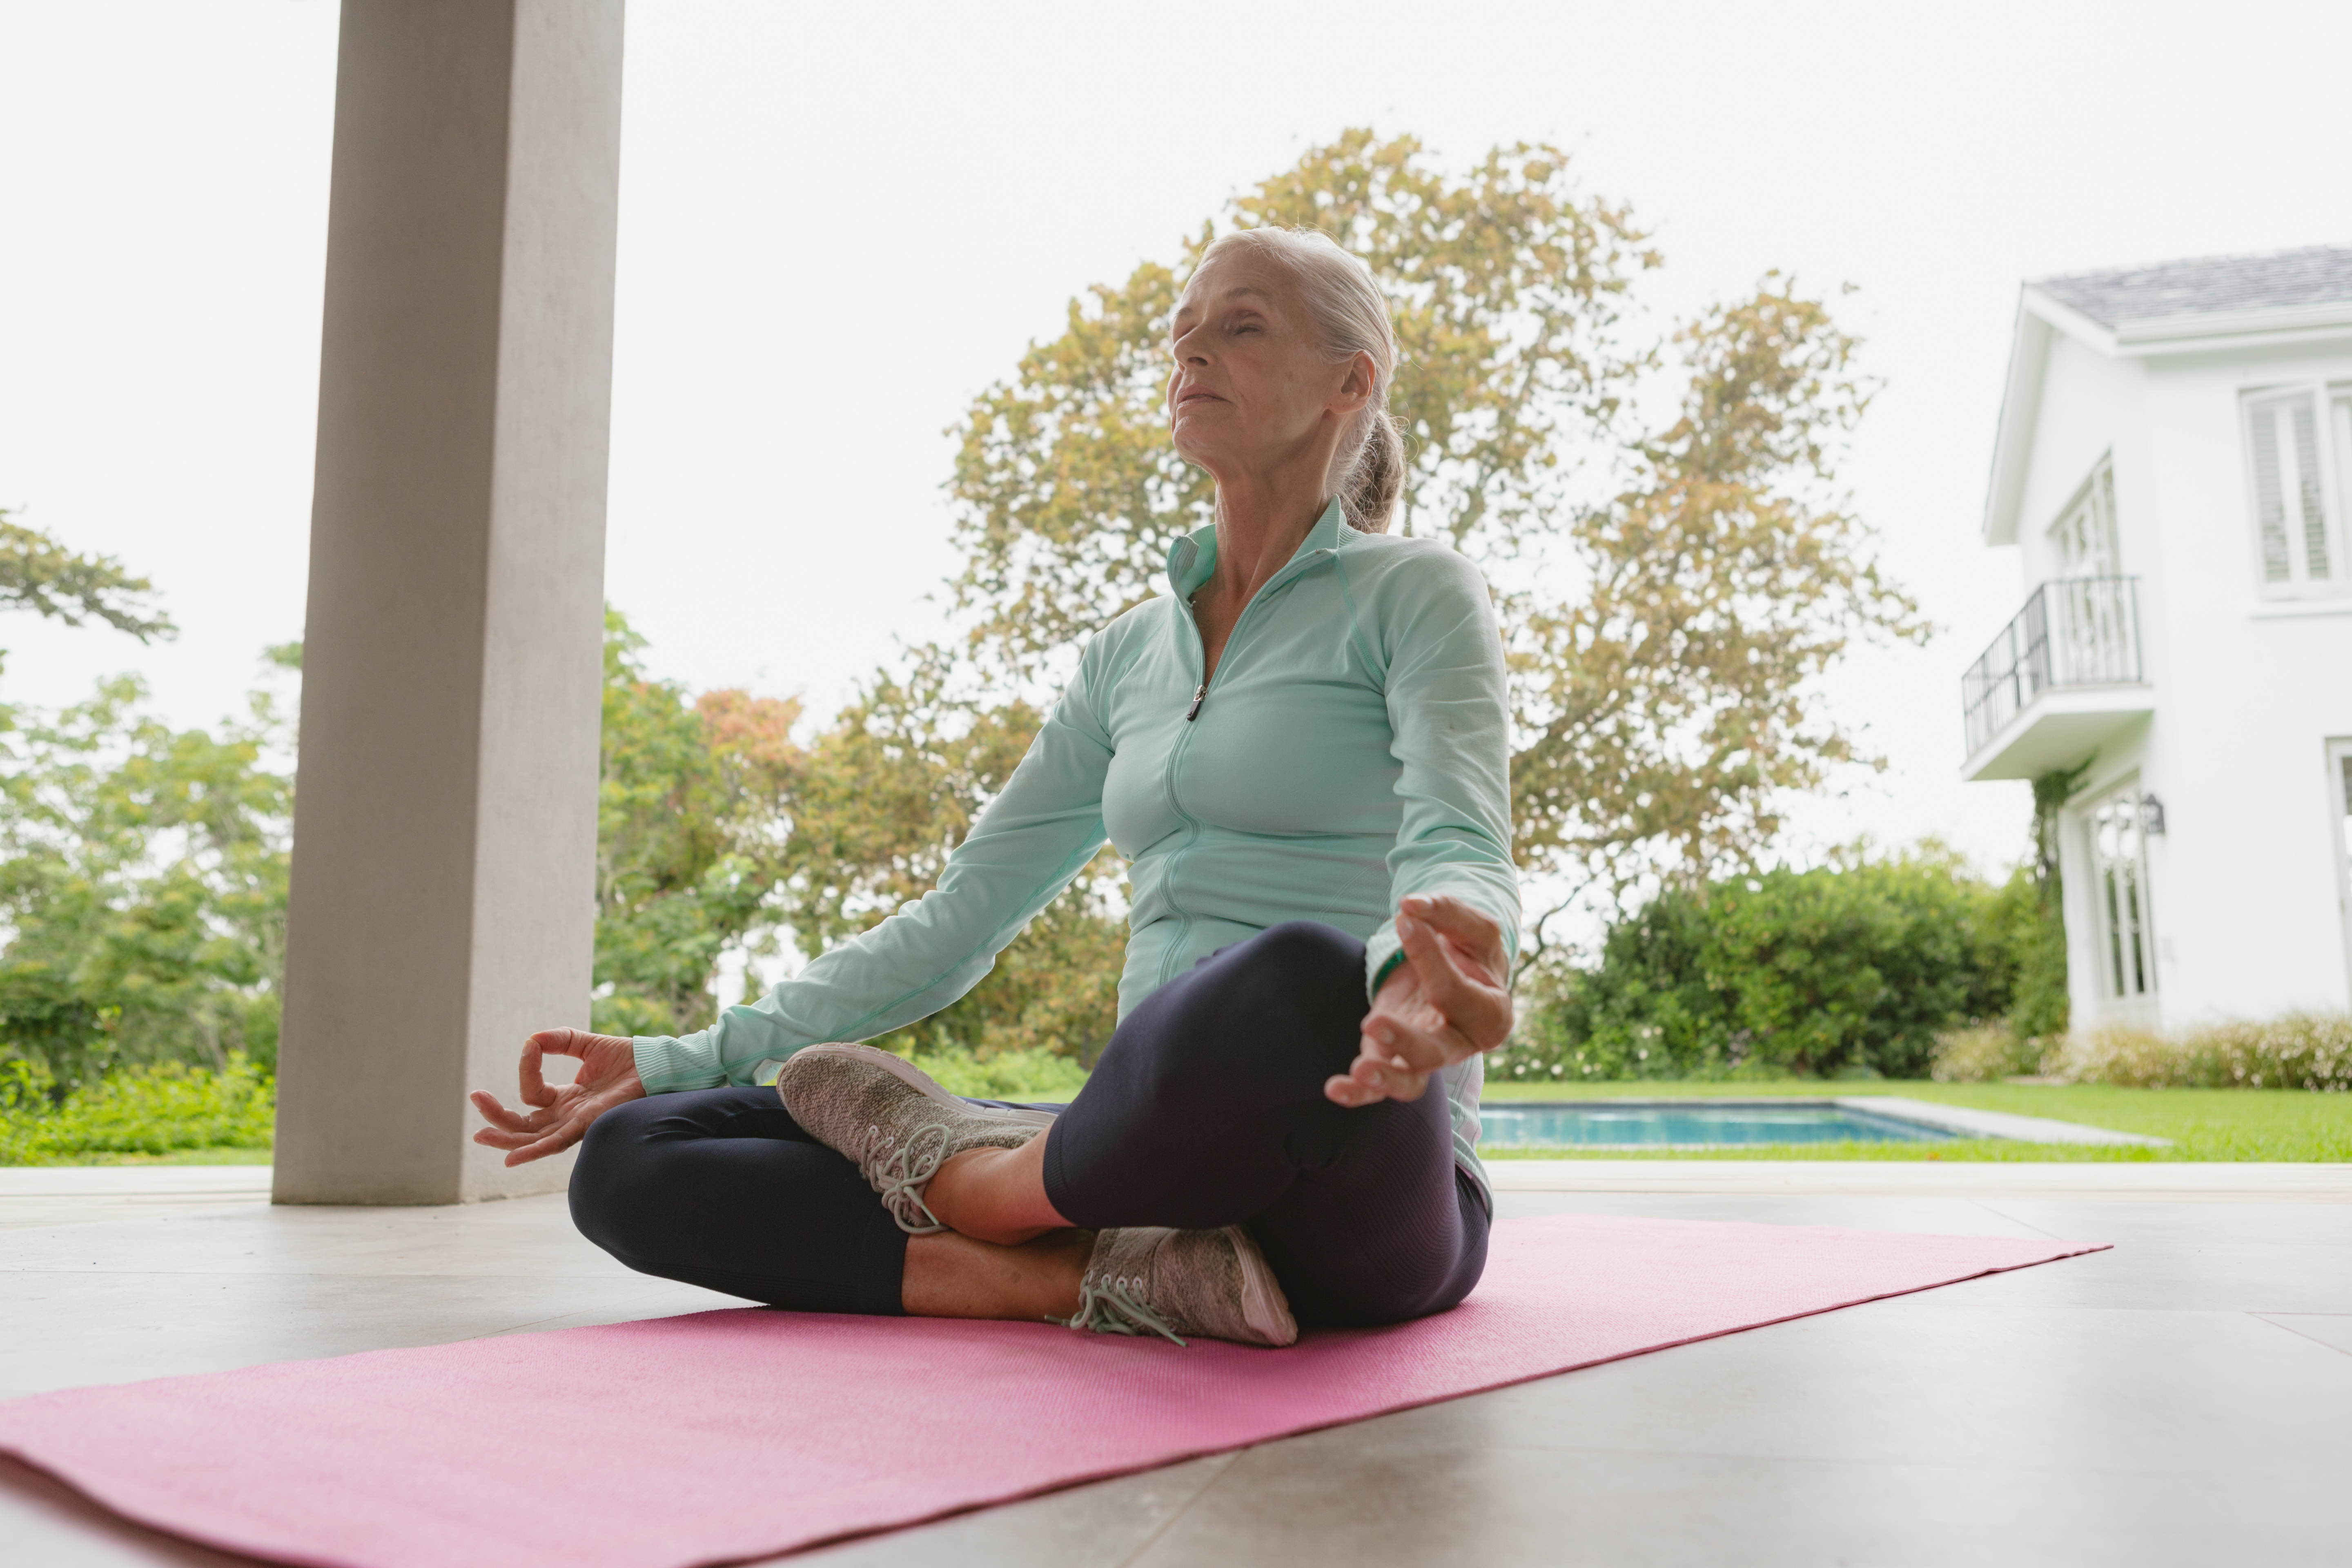 Low angle view of active senior Caucasian woman doing yoga on exercise mat in the porch at home